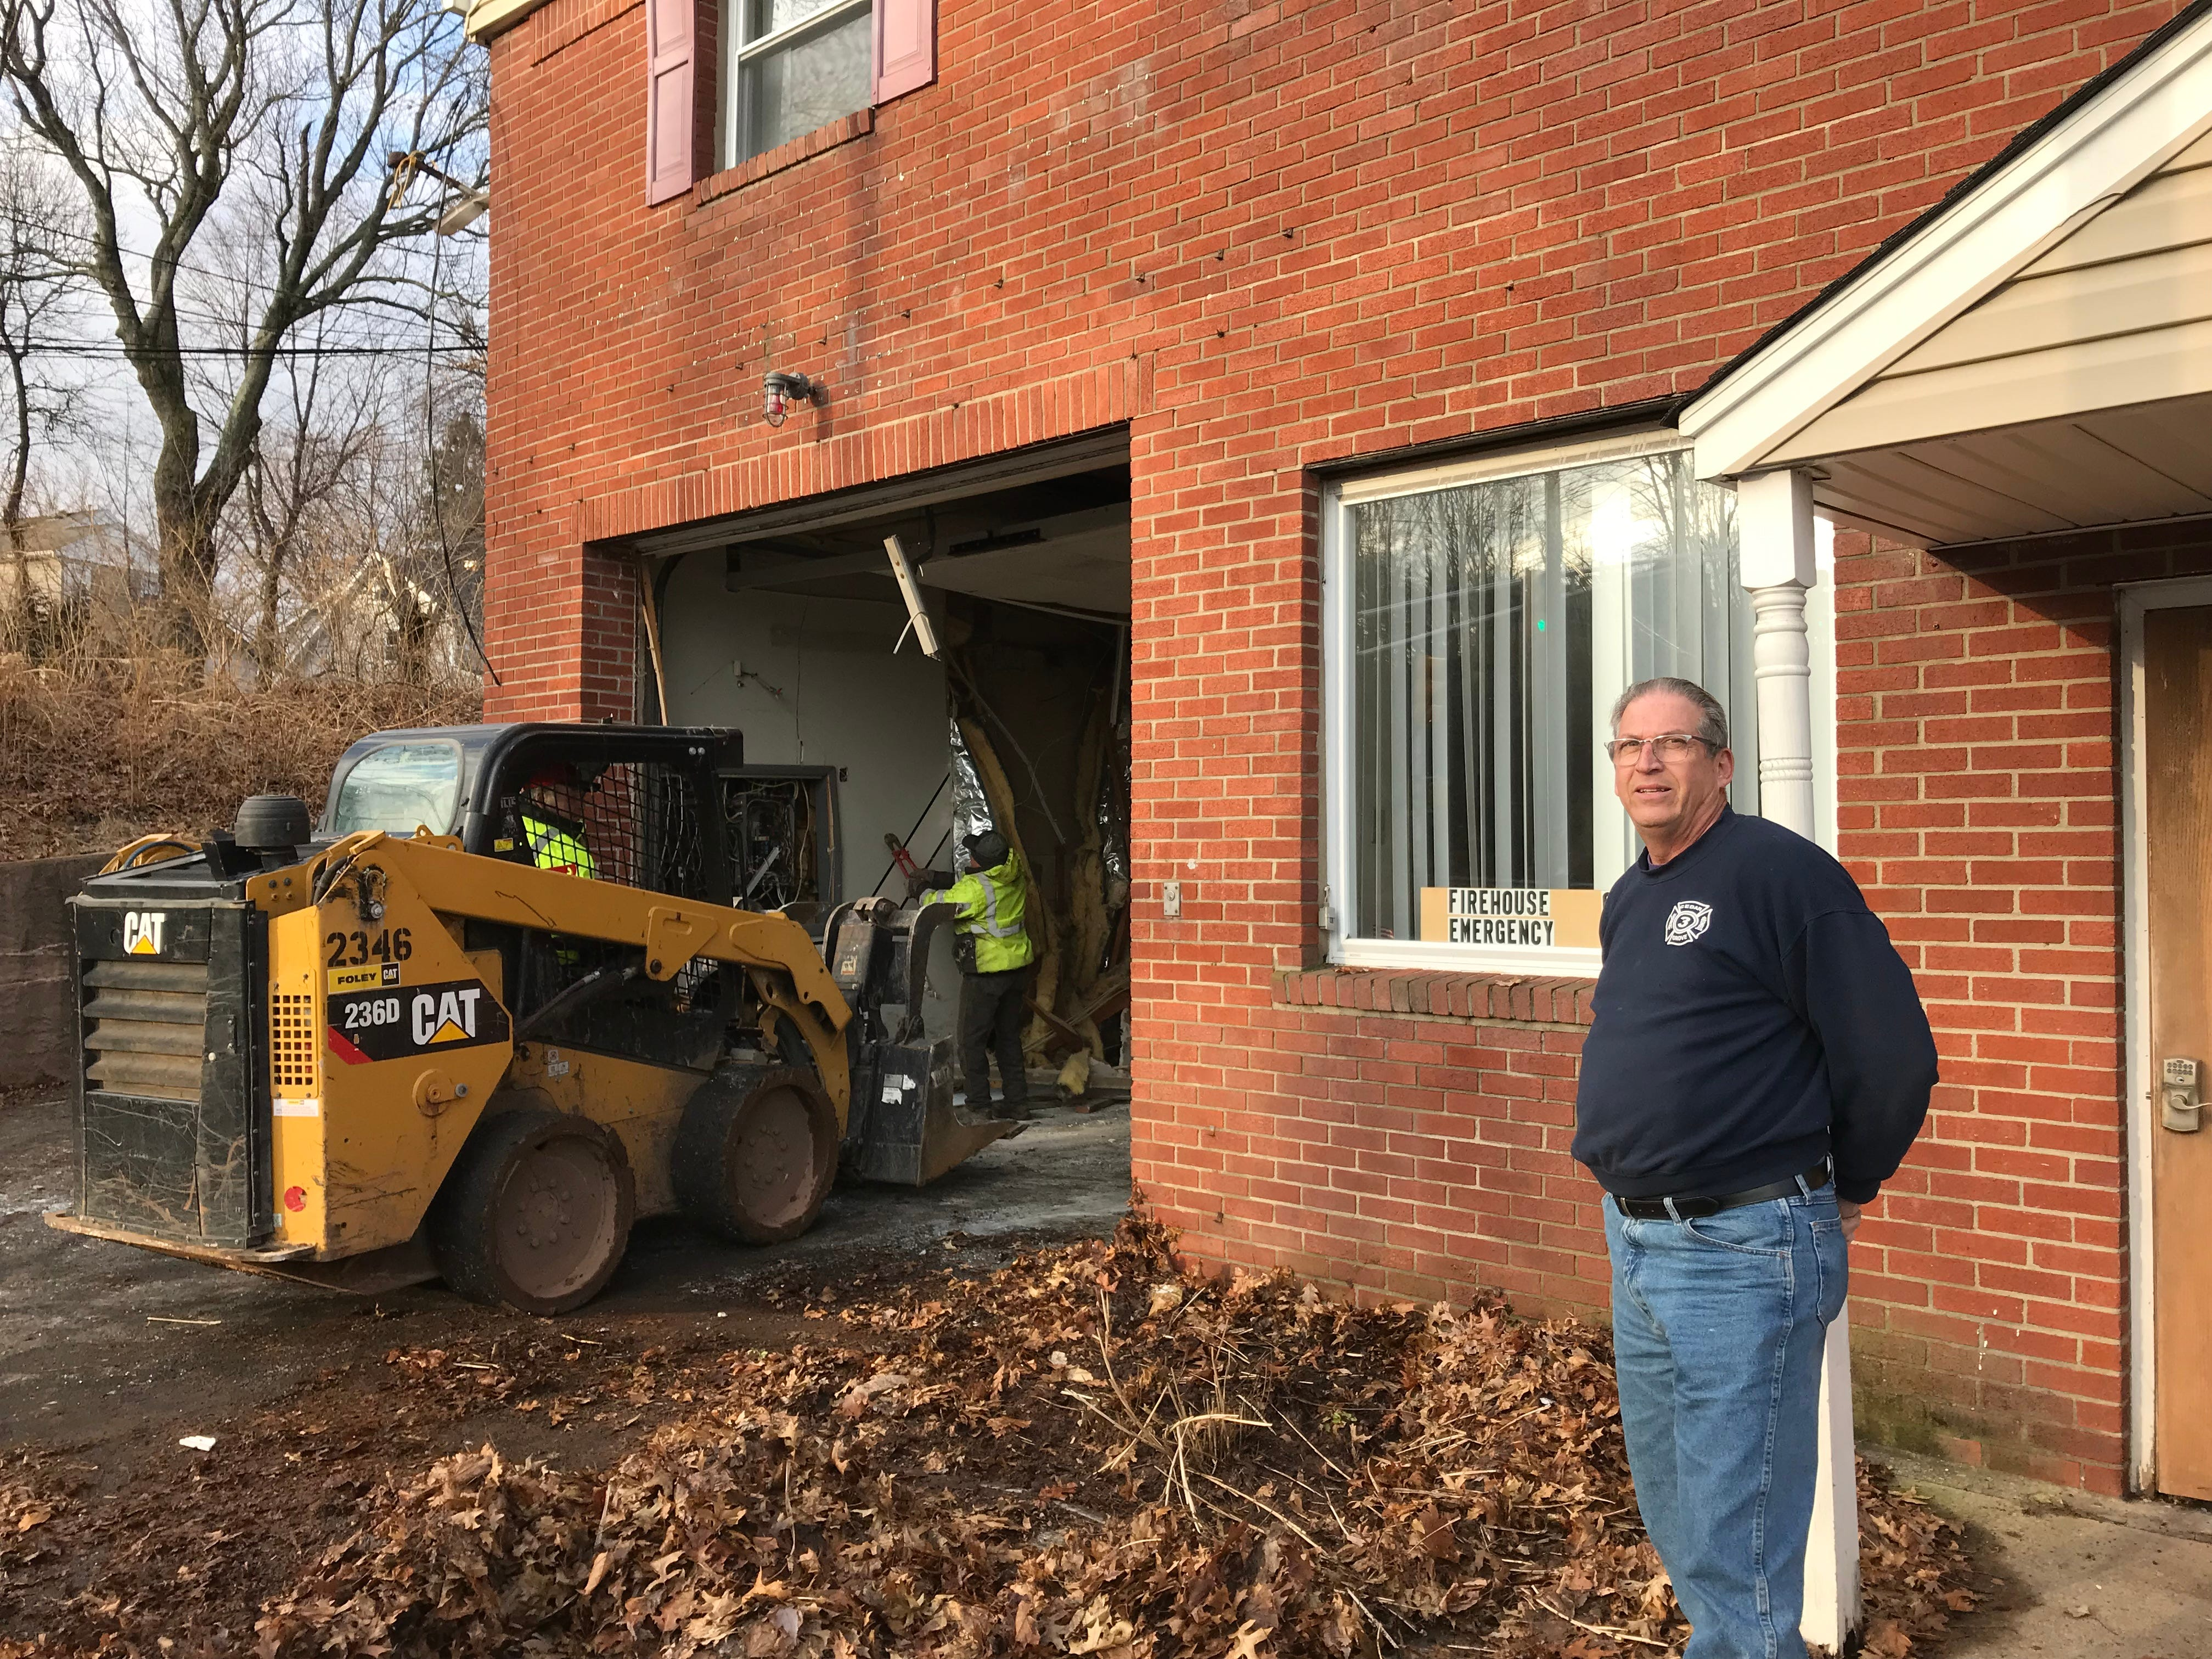 Cedar Grove Engine Company 3 President Mike Flohn watches as workers begin demolishing the South End Firehouse on Jan. 25, 2019.